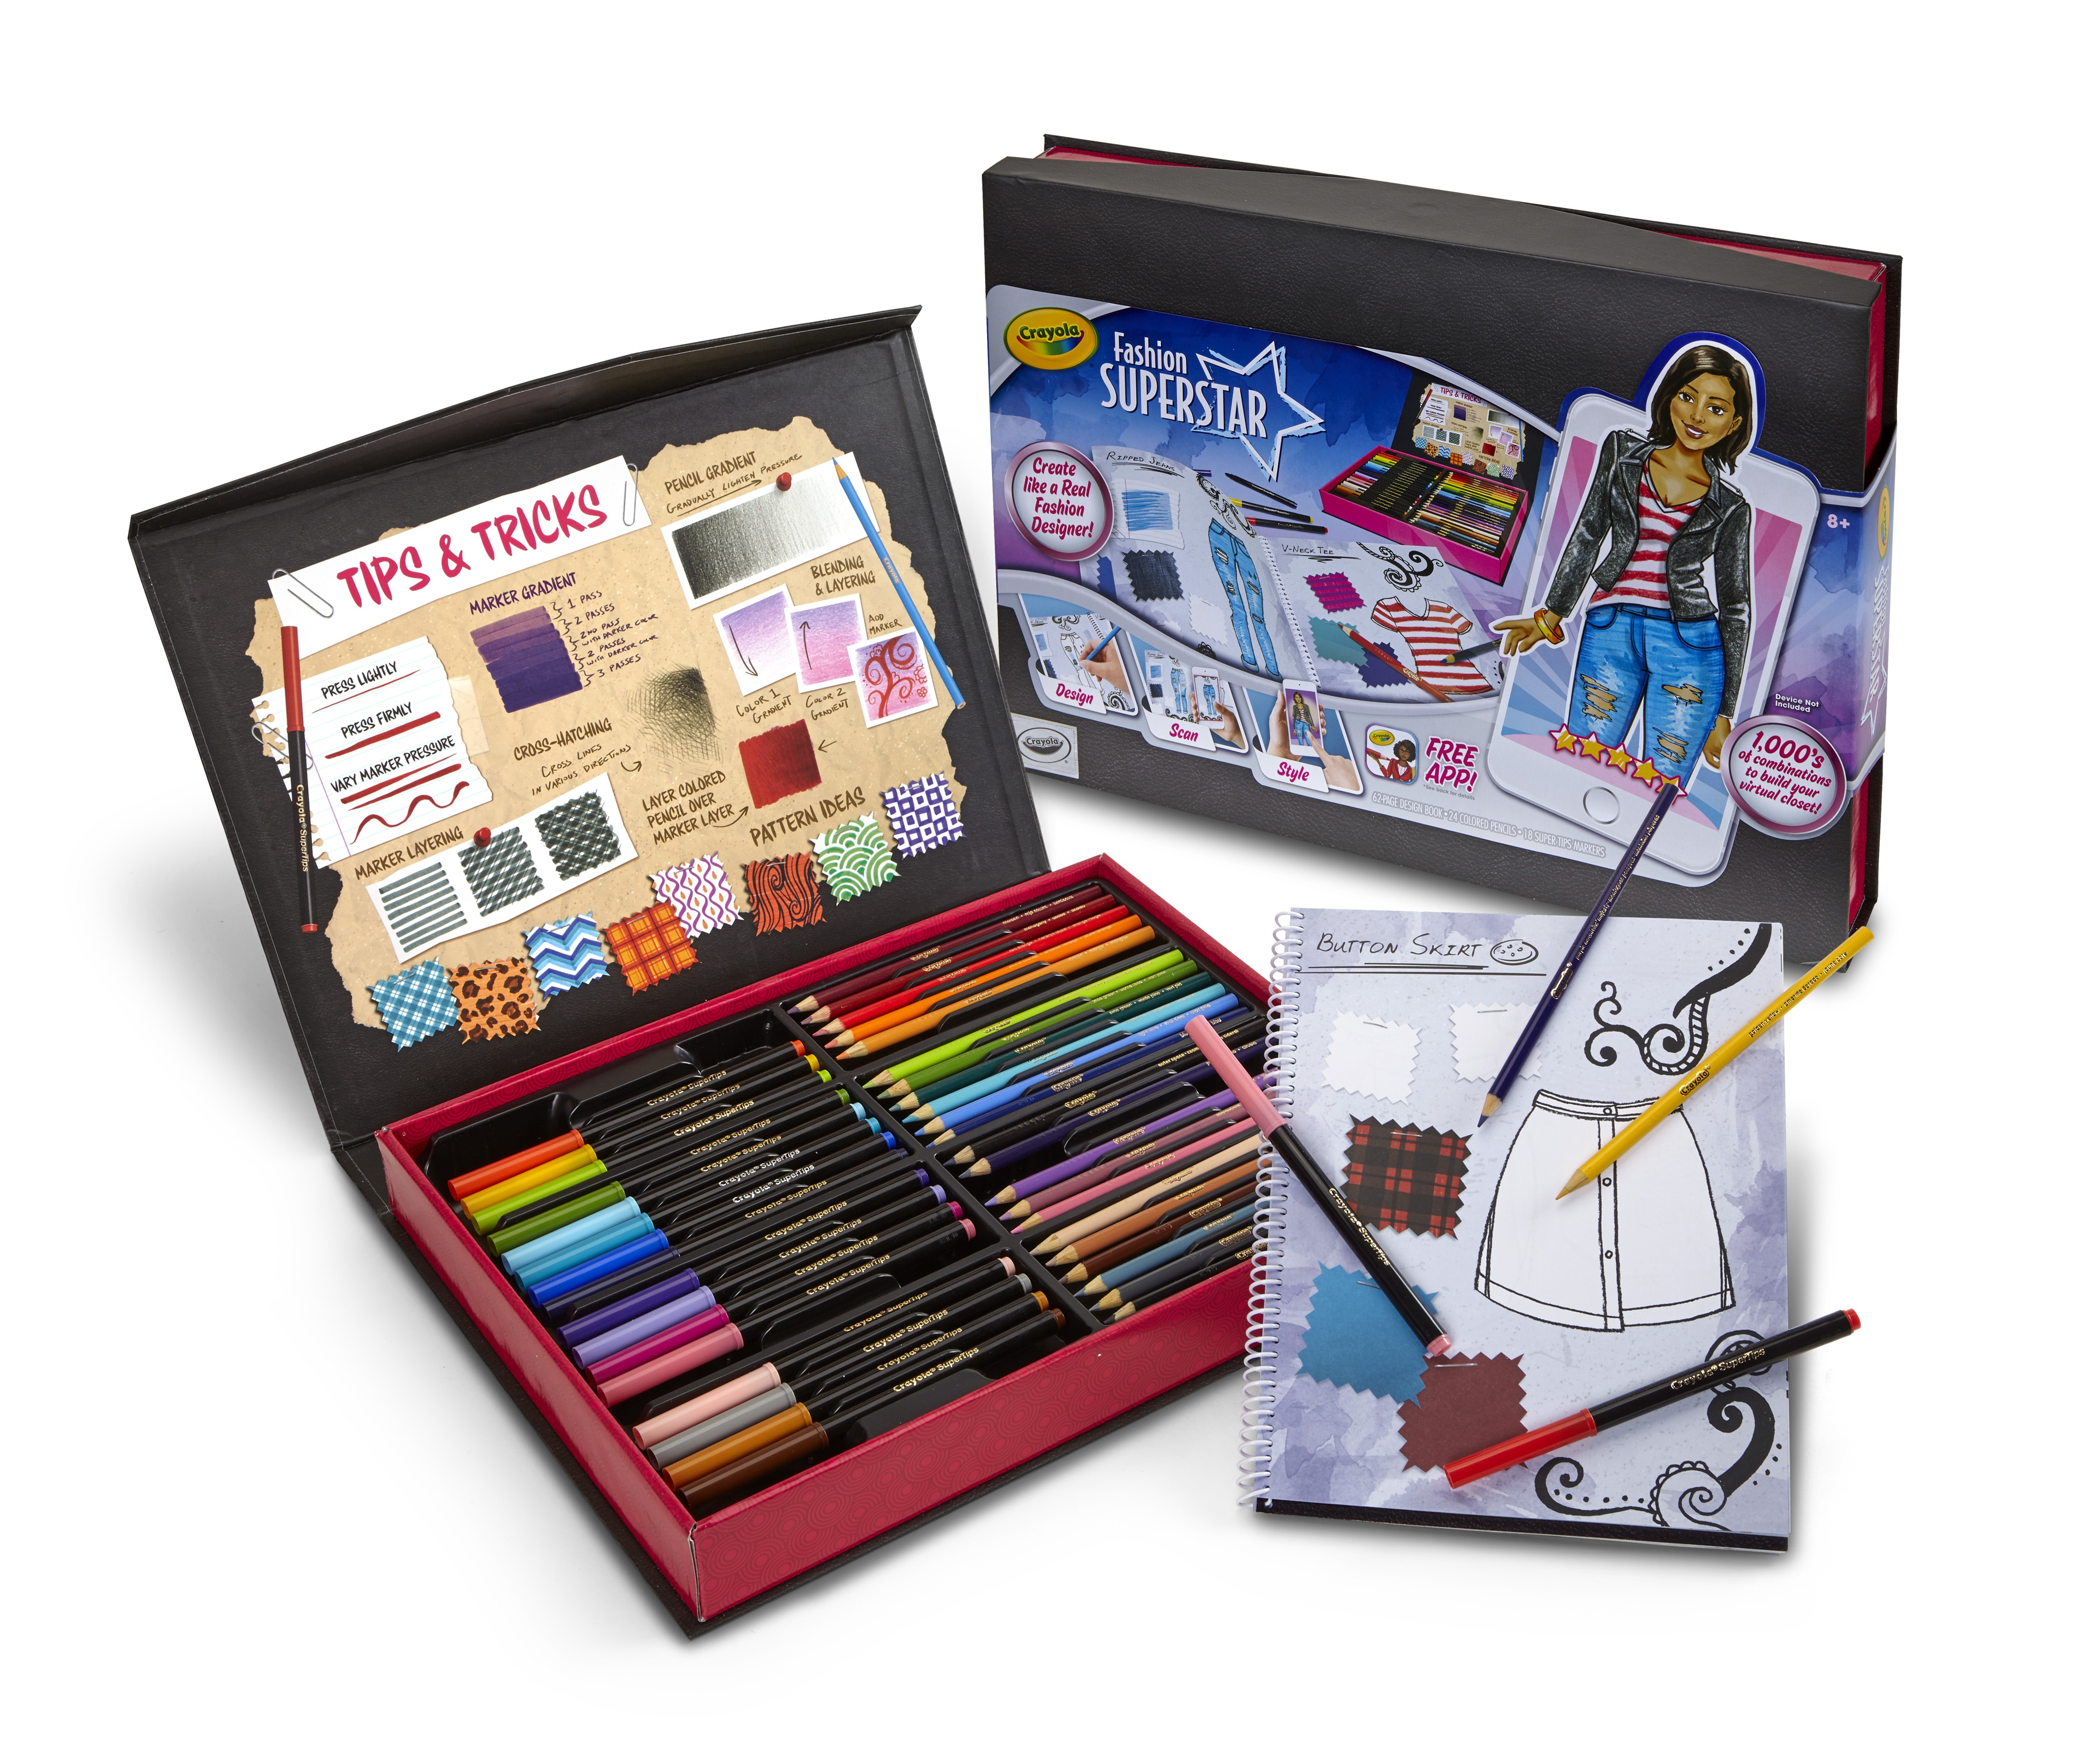 Crayola Fashion Superstar, Coloring Book and Free App, Gift by Crayola